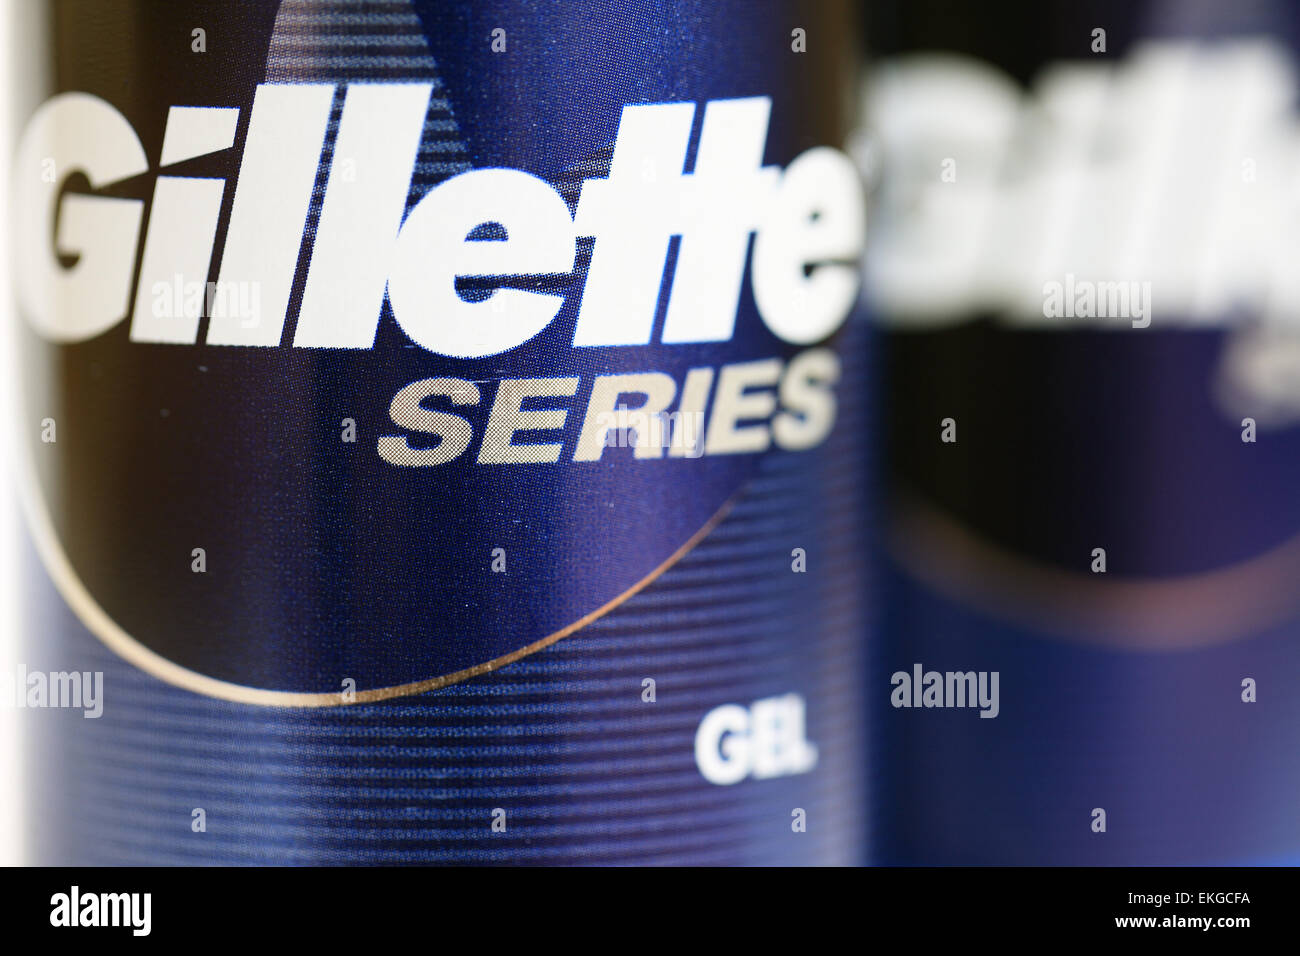 Gillette series shaving gel - Stock Image